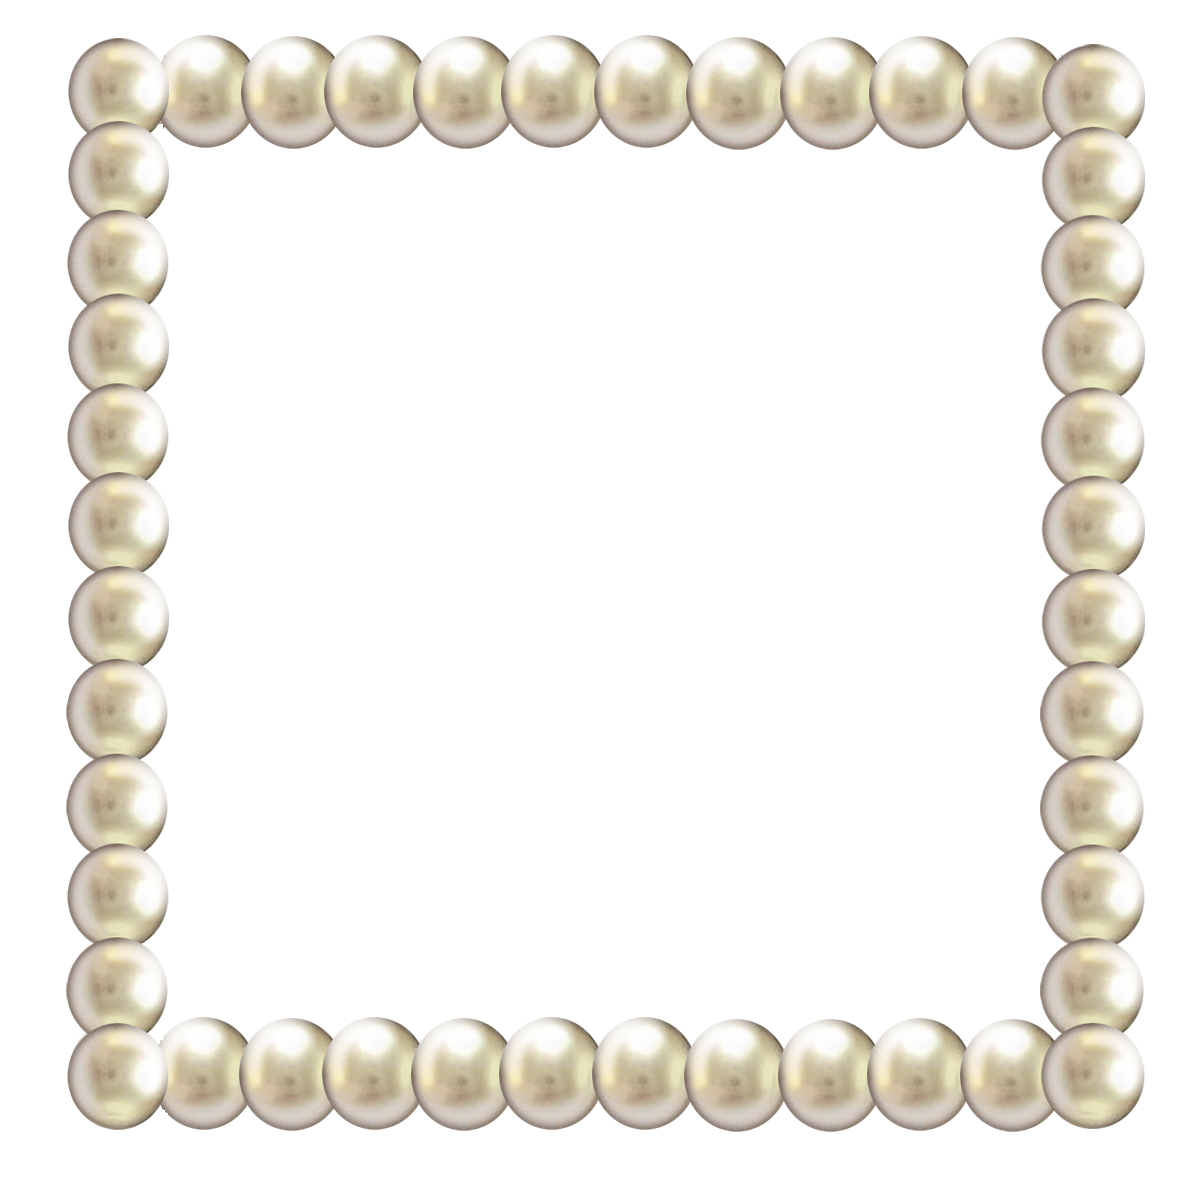 Pearl Frames Table Pictures - 3427 - TransparentPNG